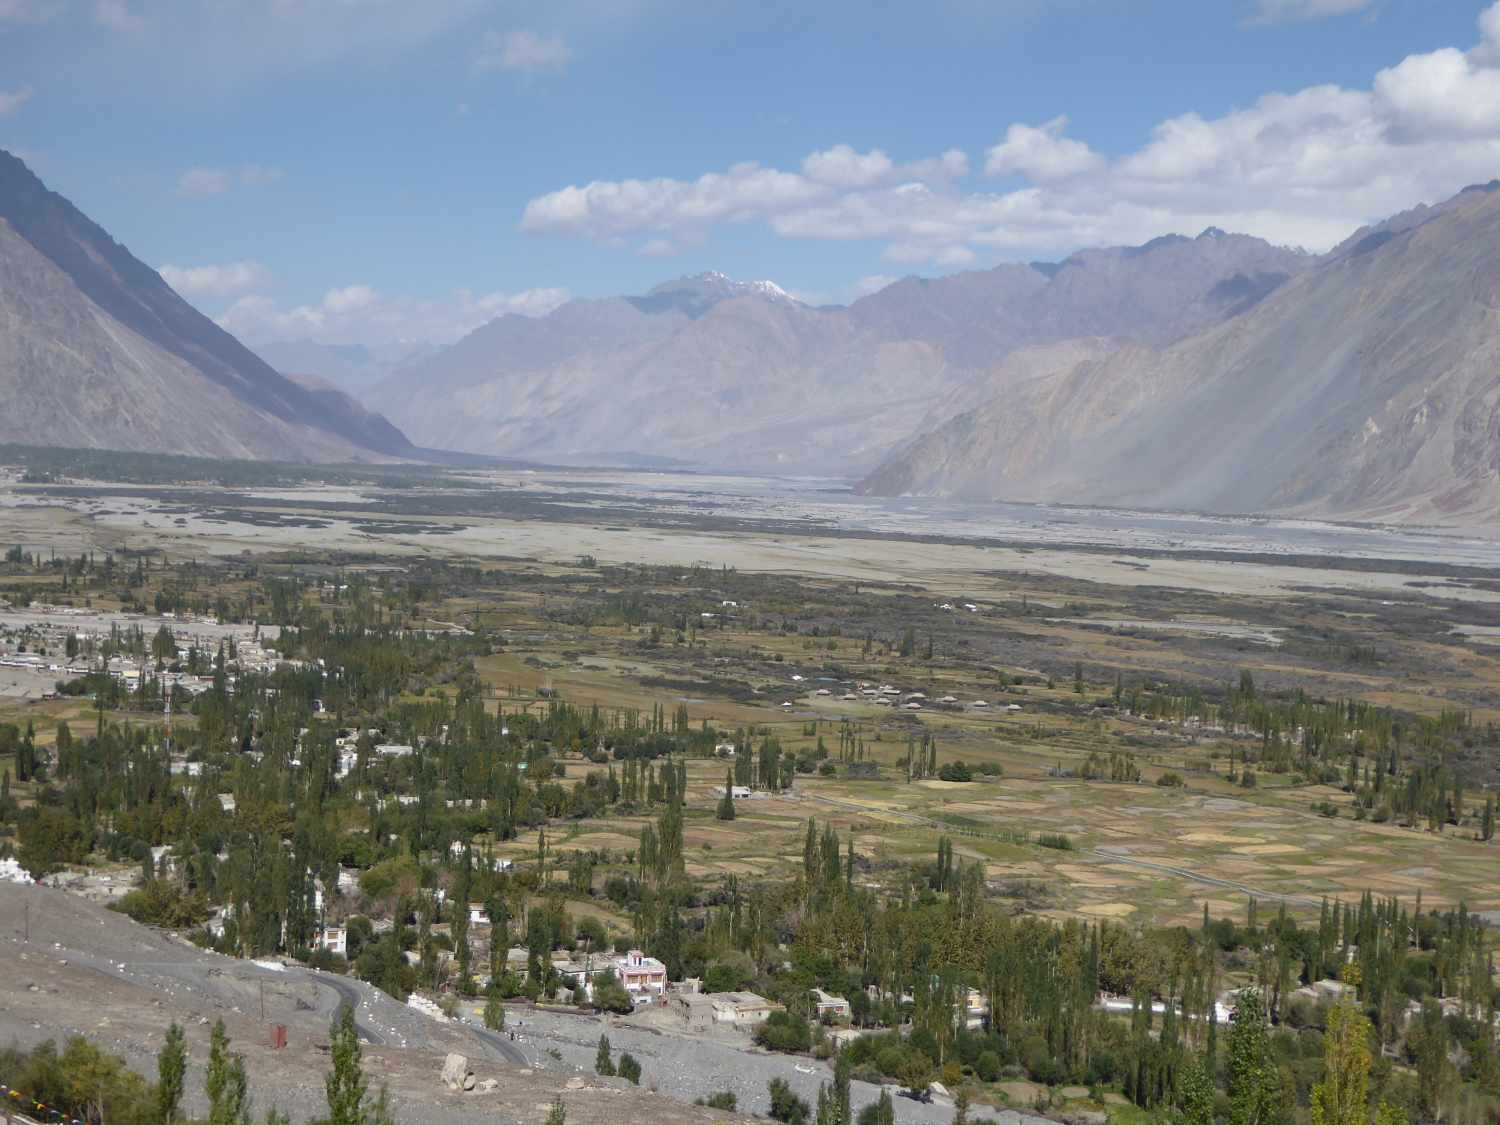 The Nubra Valley - bright and wide and sometimes even green